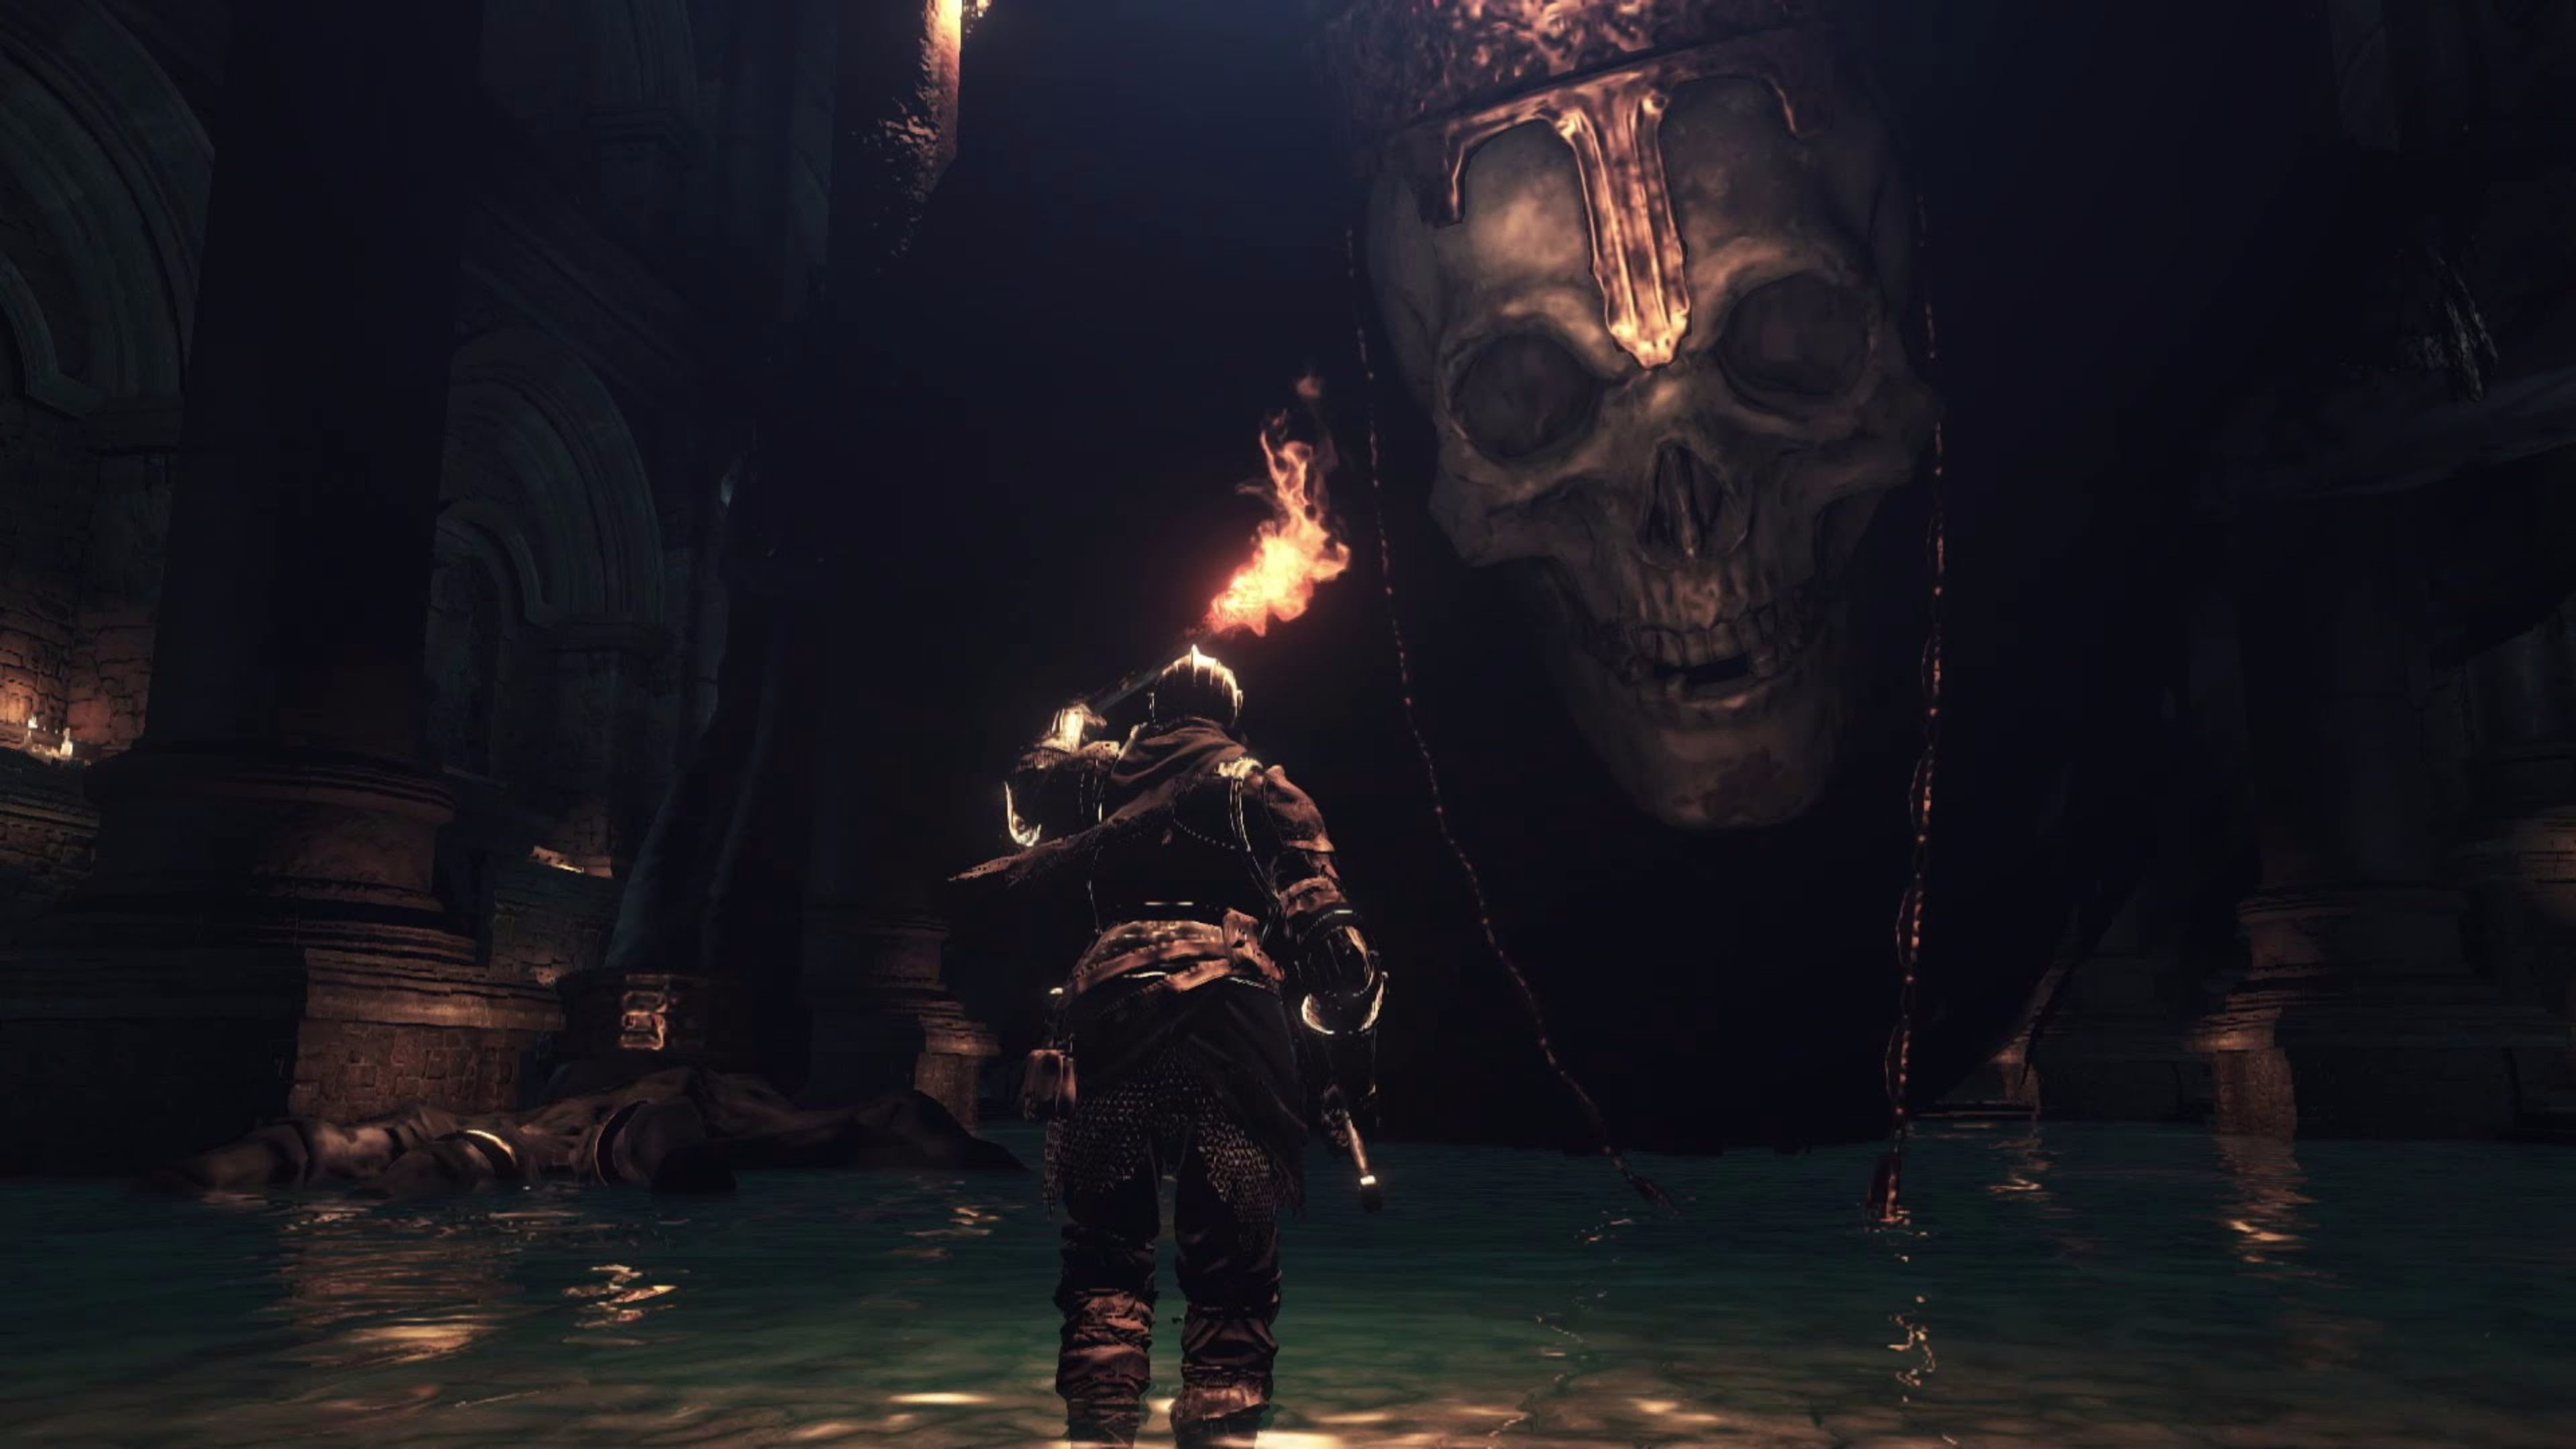 Dark Souls 3 teases major announcement at the end of August – GamersPack